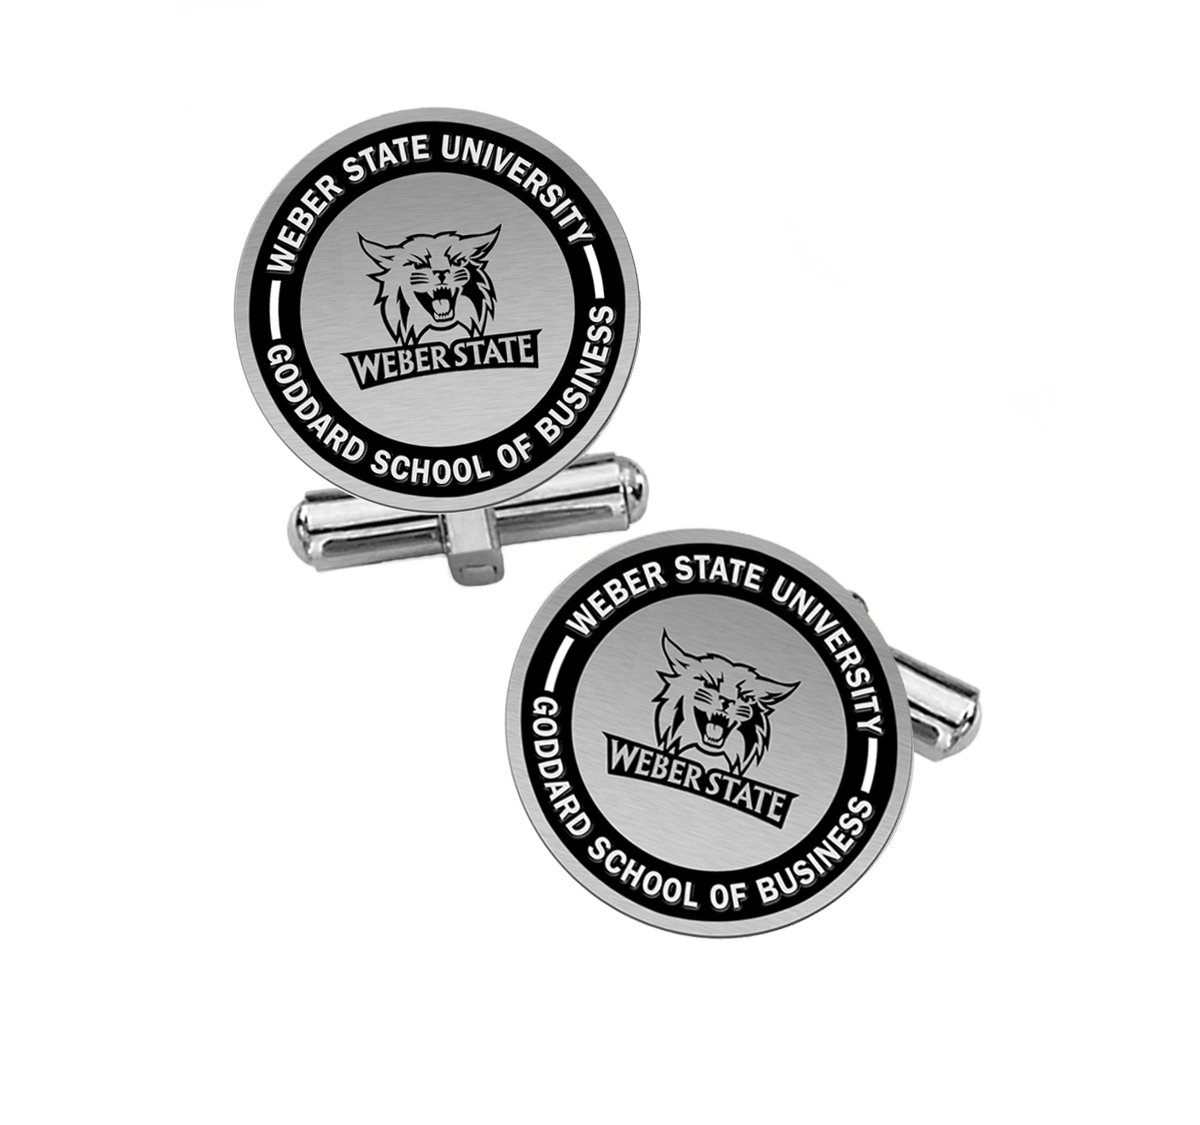 Goddard School of Business Cuff Links | Weber State University by College Jewelry